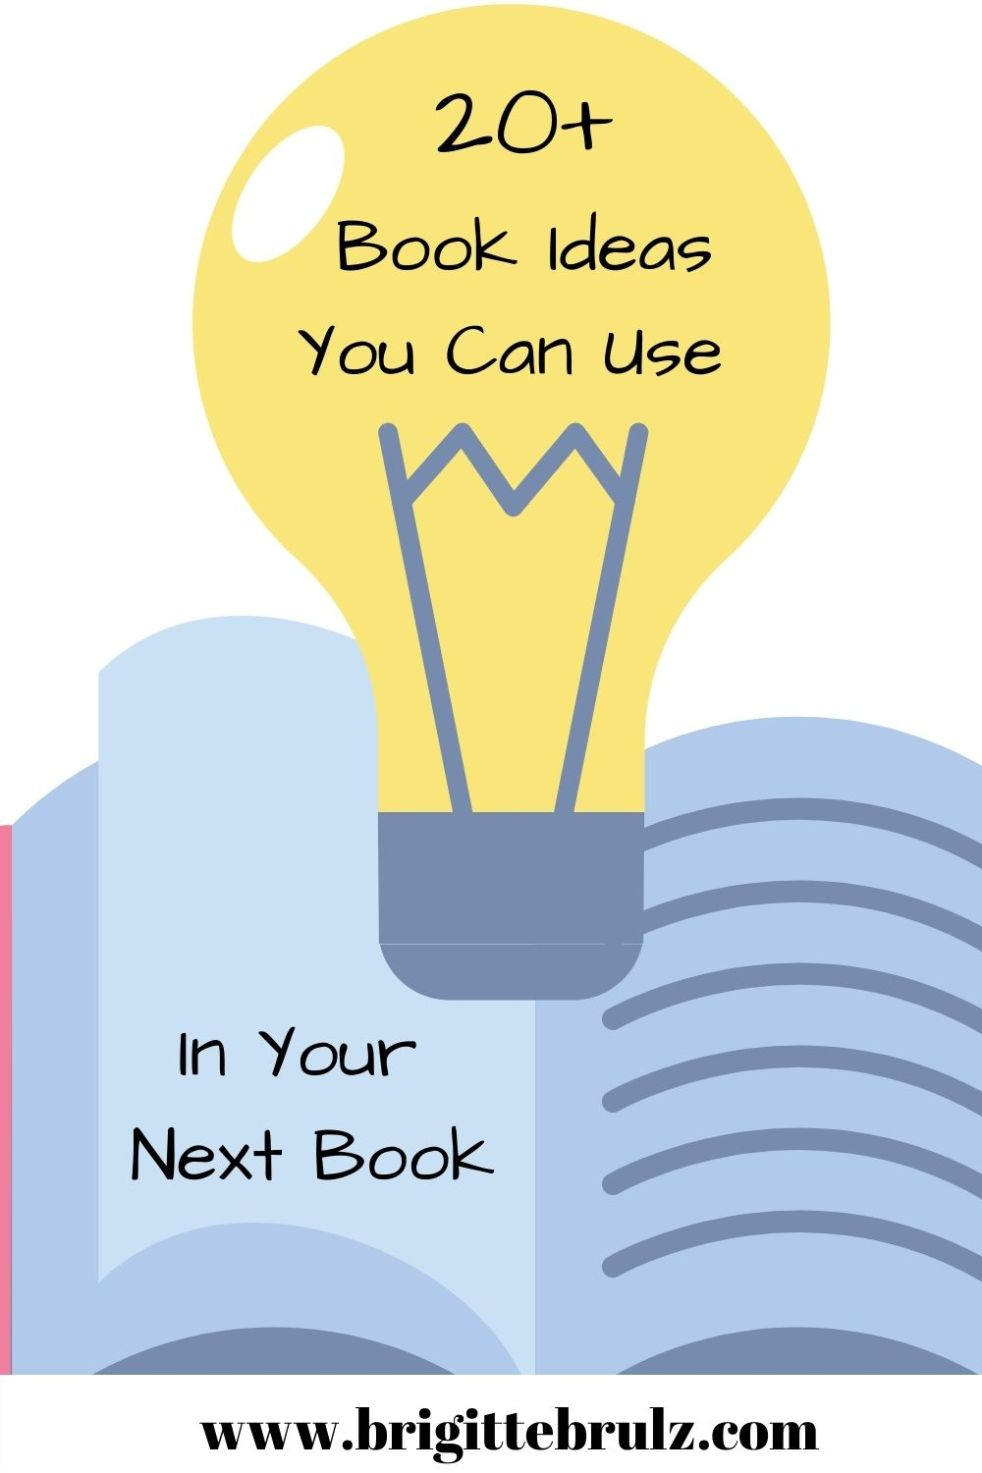 20+ Book Ideas You Can Use in Your Next Book